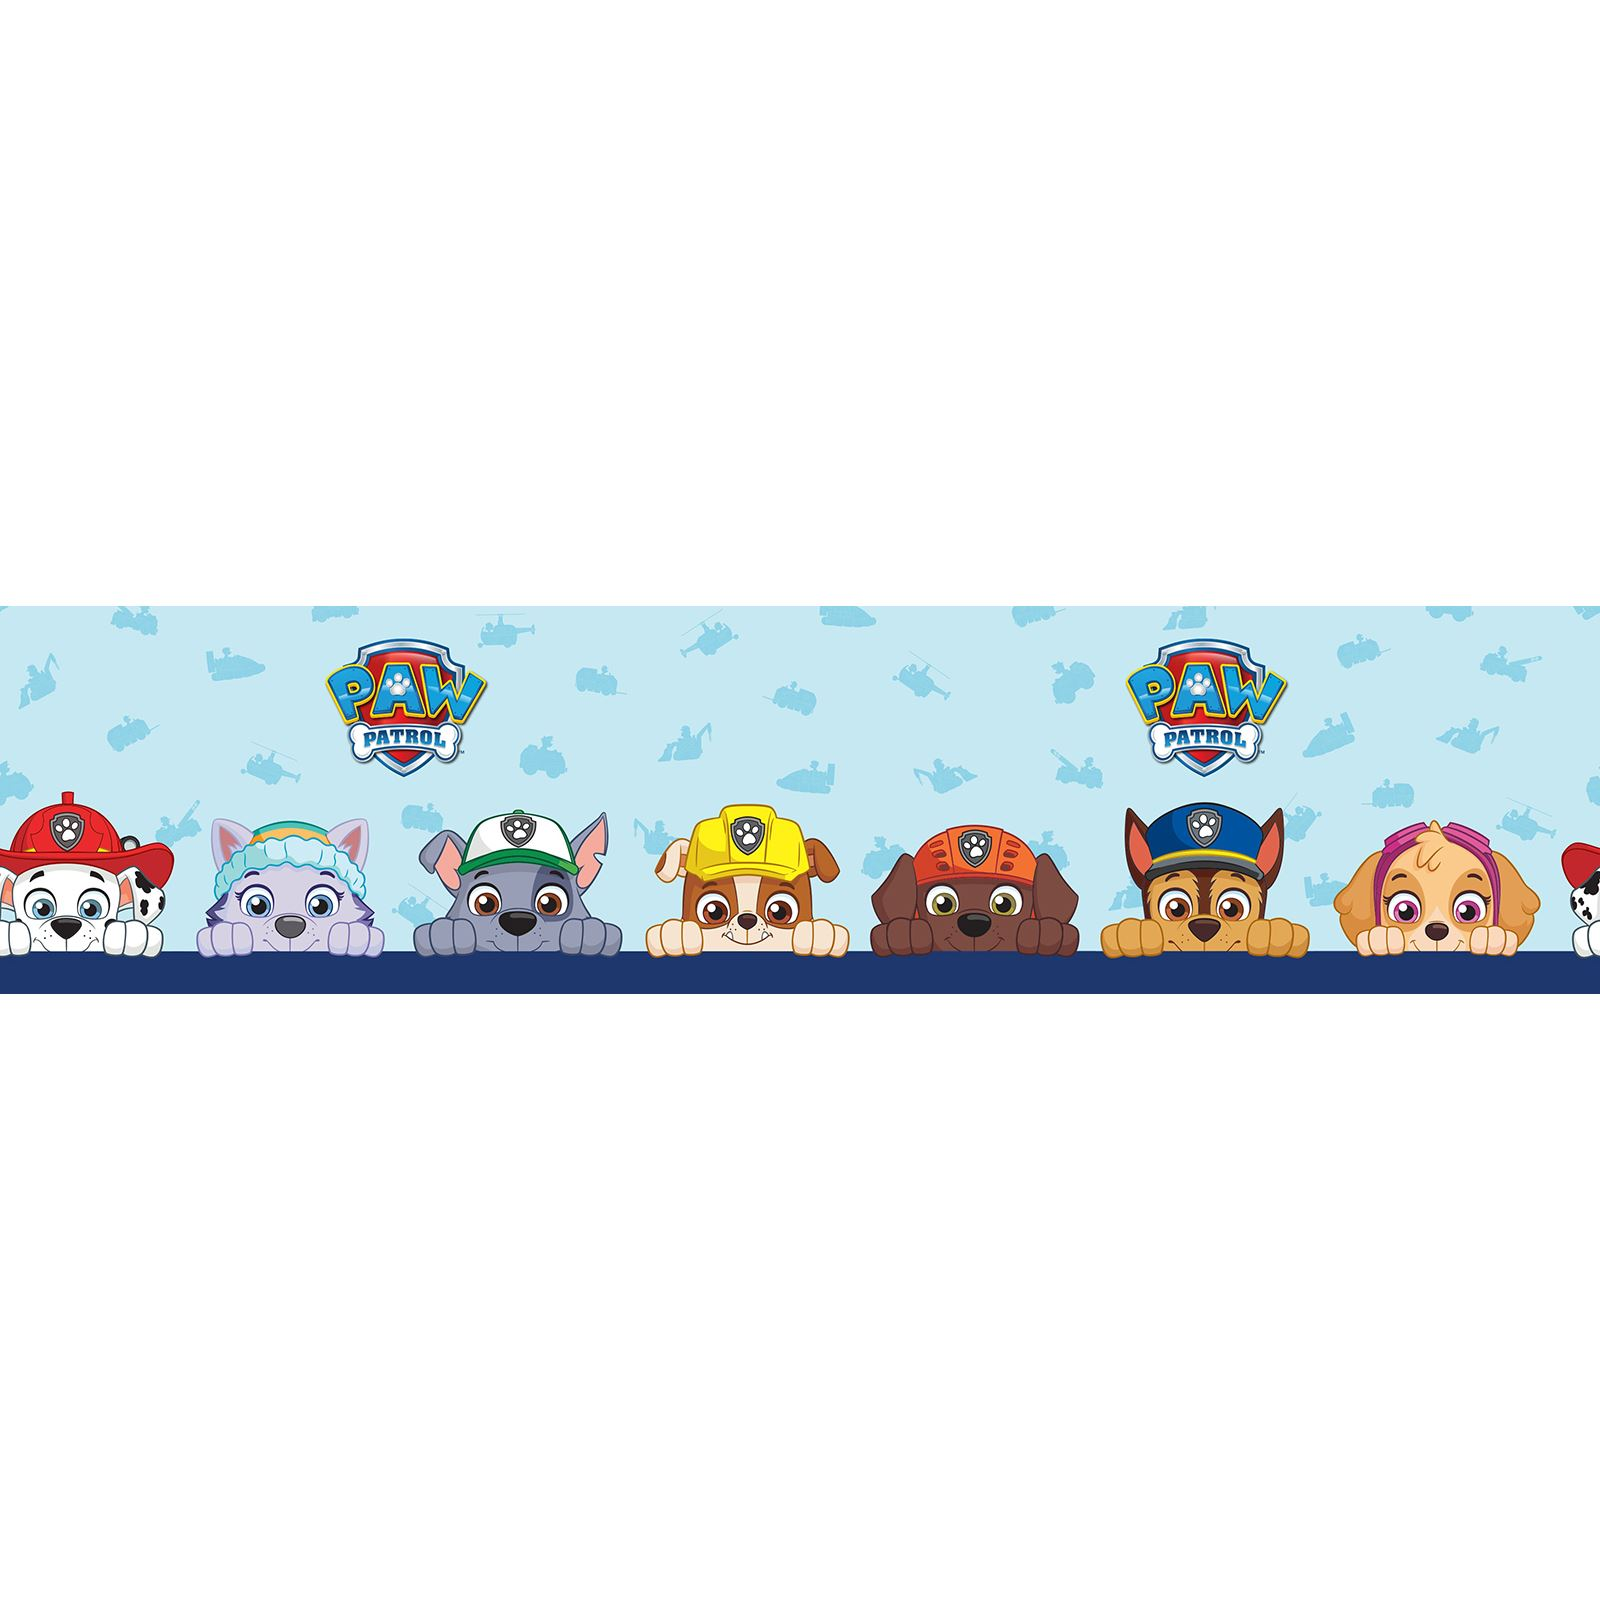 Details About Paw Patrol Self Adhesive Wallpaper Border 5m Wall Decor Childrens Bedroom New